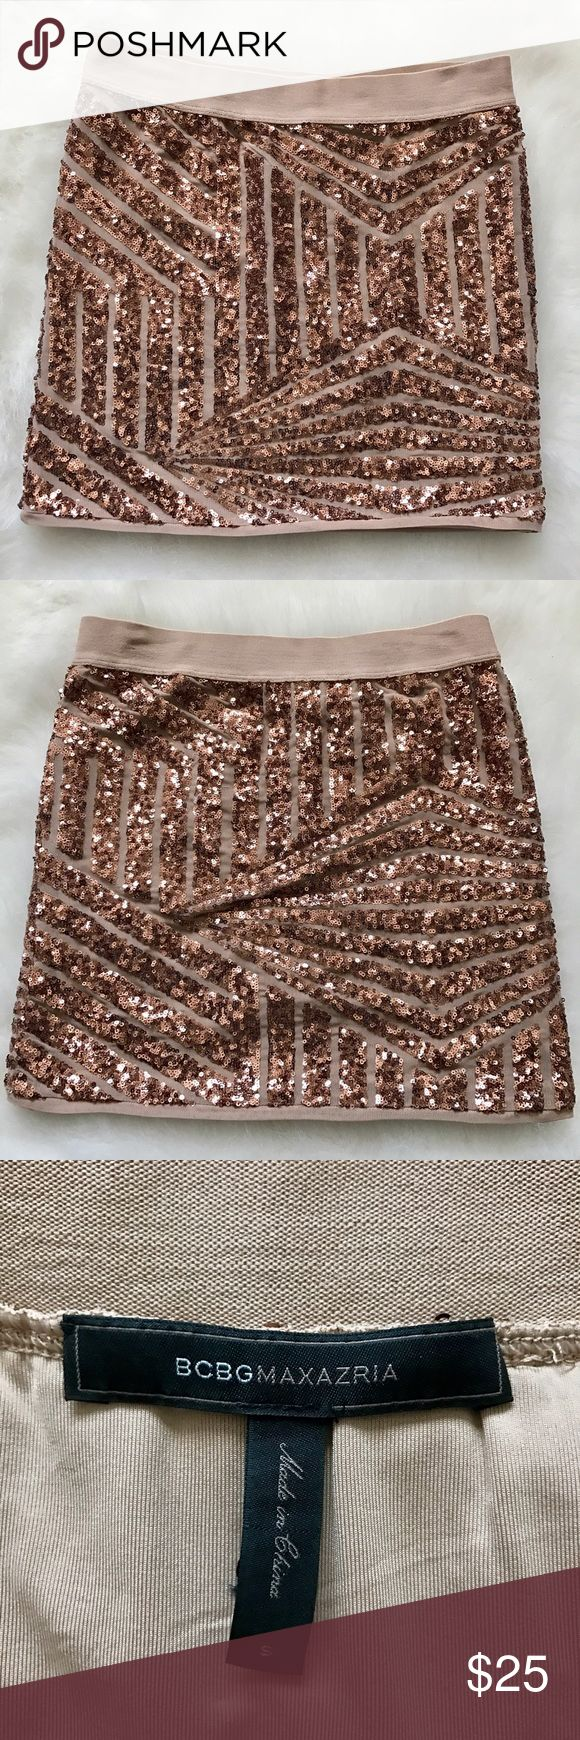 BCBG Maxazria Sequin Skirt Beautiful Sequins form a gorgeous pattern to make up this BCBG mini skirt BCBGMaxAzria Skirts Mini